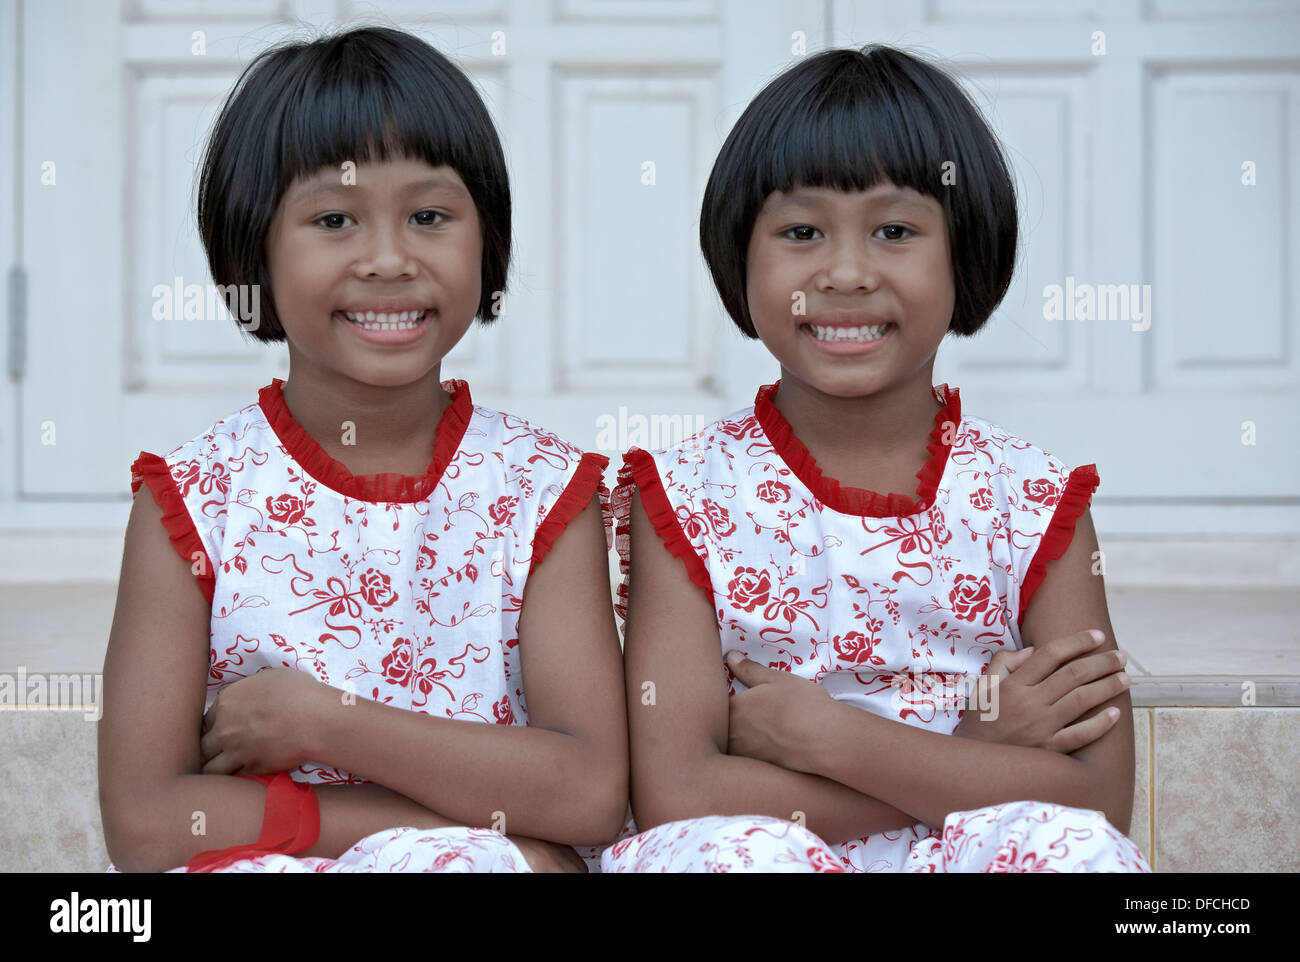 identical-thai-6-year-old-twin-sisters-t